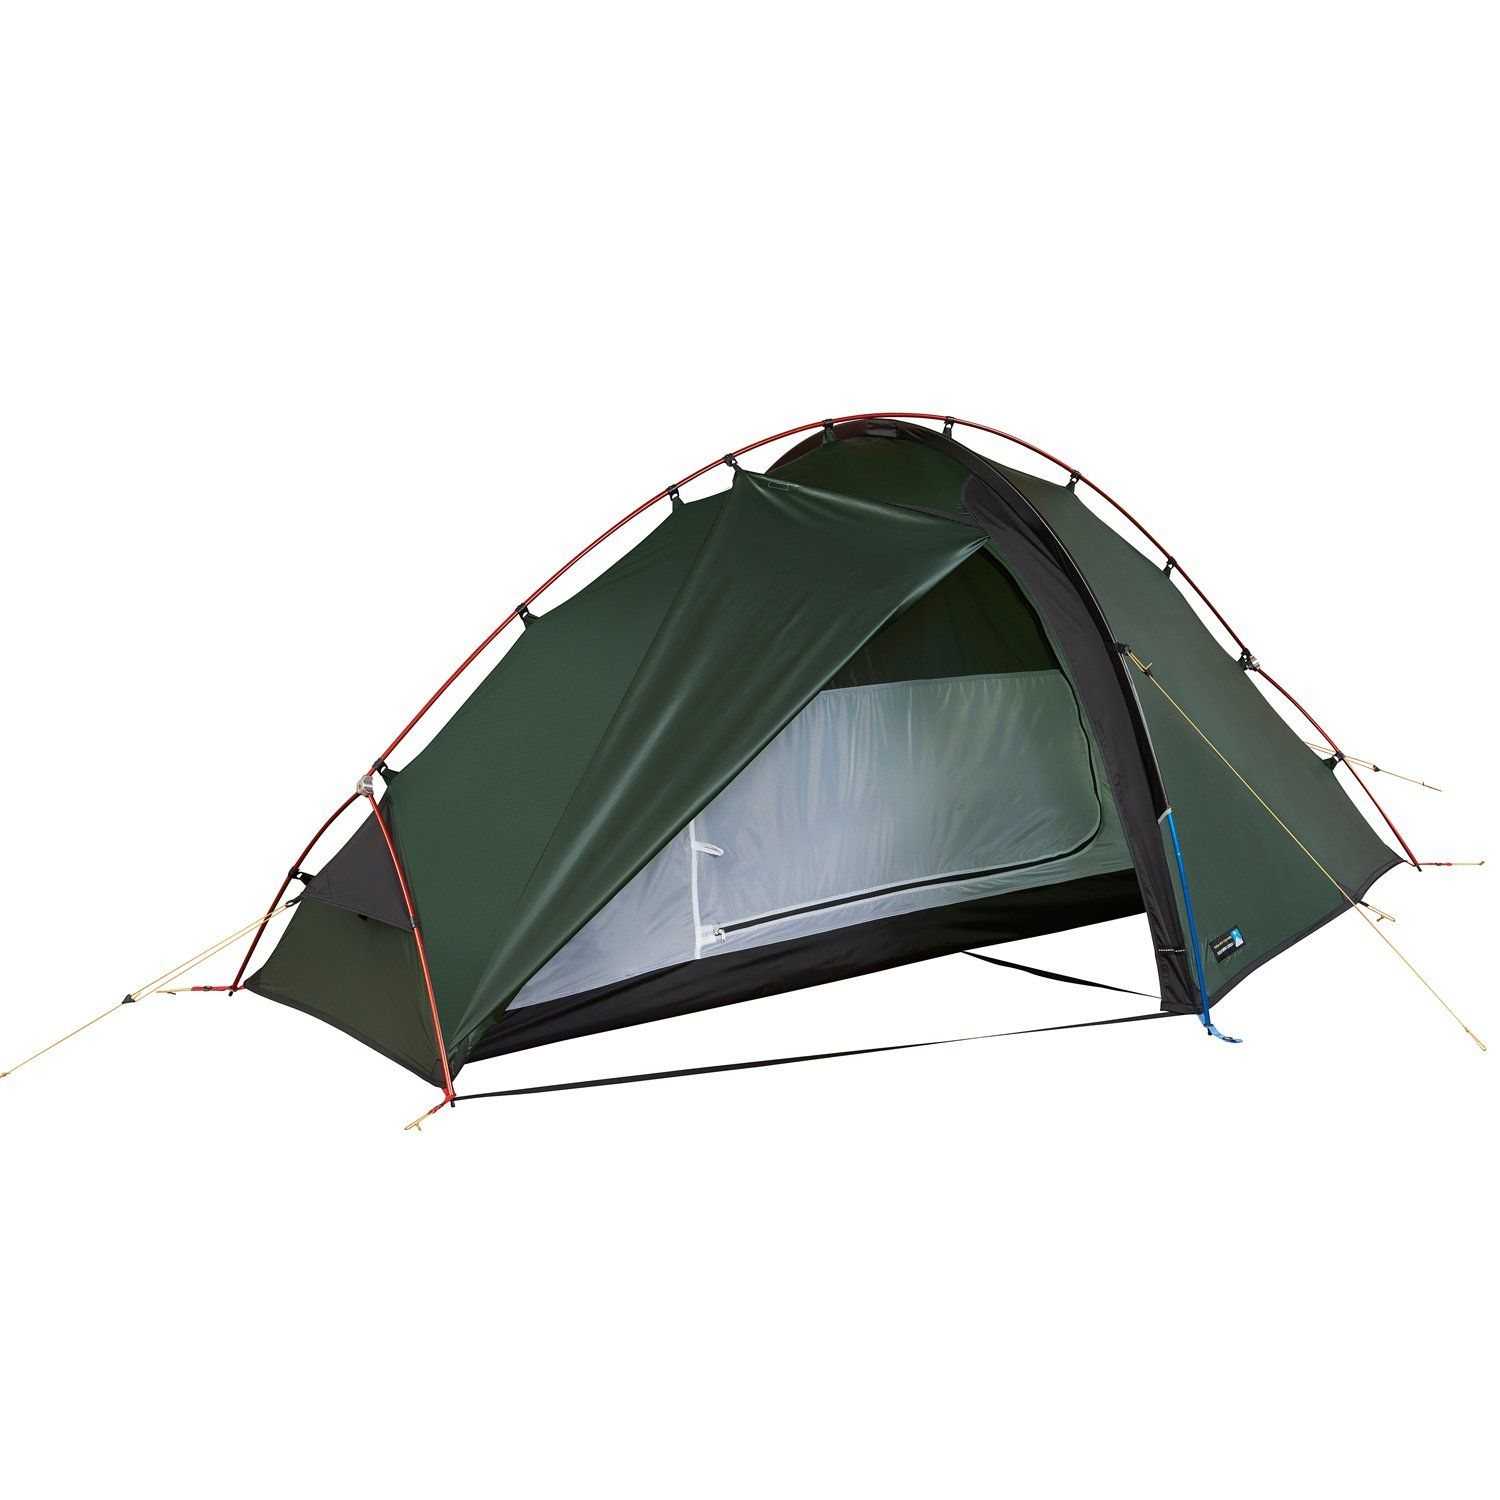 The Terra Nova Southern Cross 1 Tent is a completely free-standing 1 man tent with a lightweight feel and fully waterproof protection for backpacking and ...  sc 1 st  Pinterest & Terra Nova Southern Cross 1 - Terra Nova Equipment | Concept ...